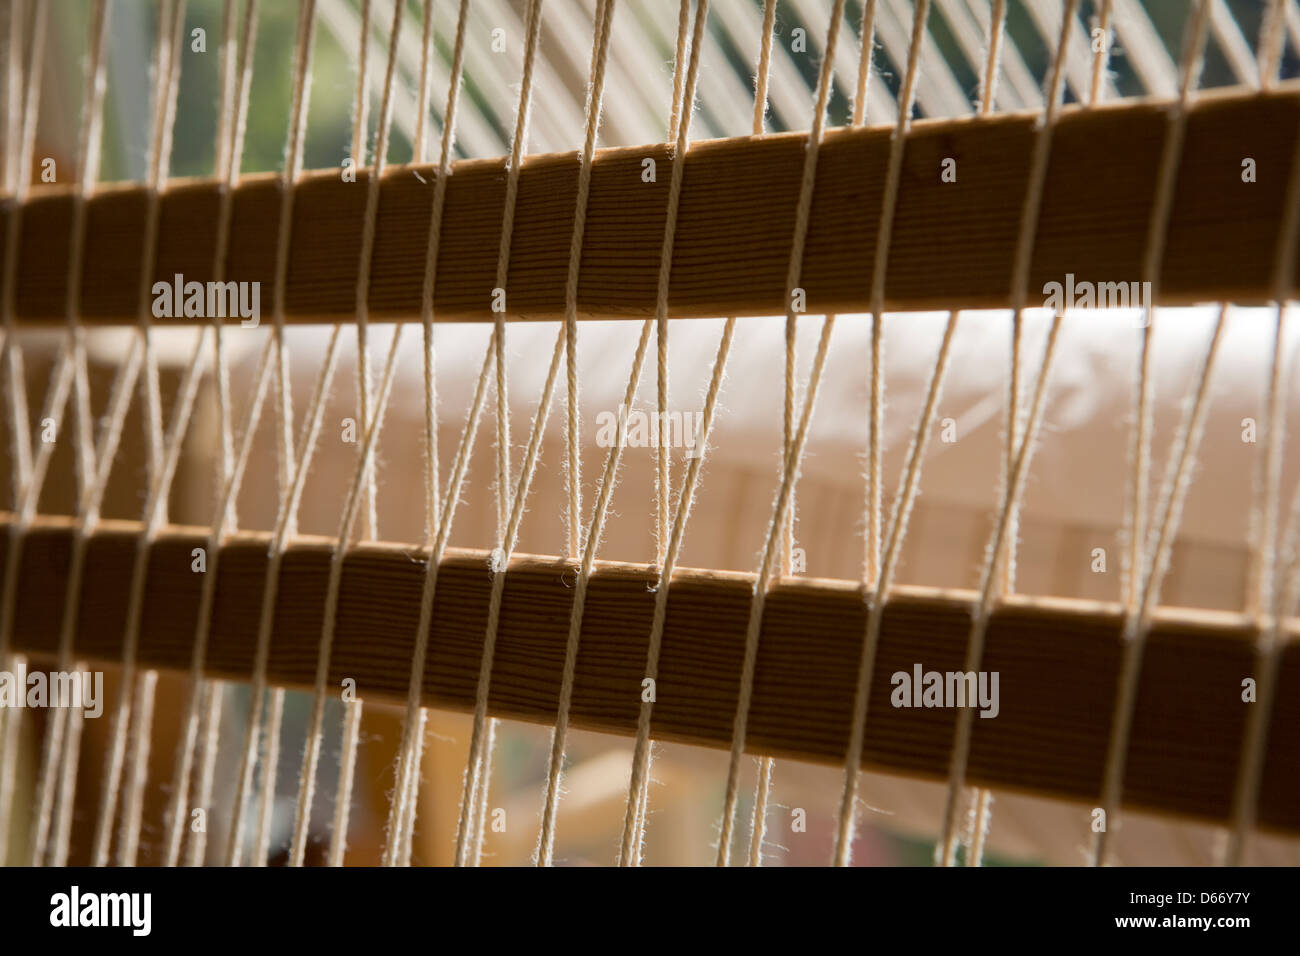 Part of a loom - Stock Image